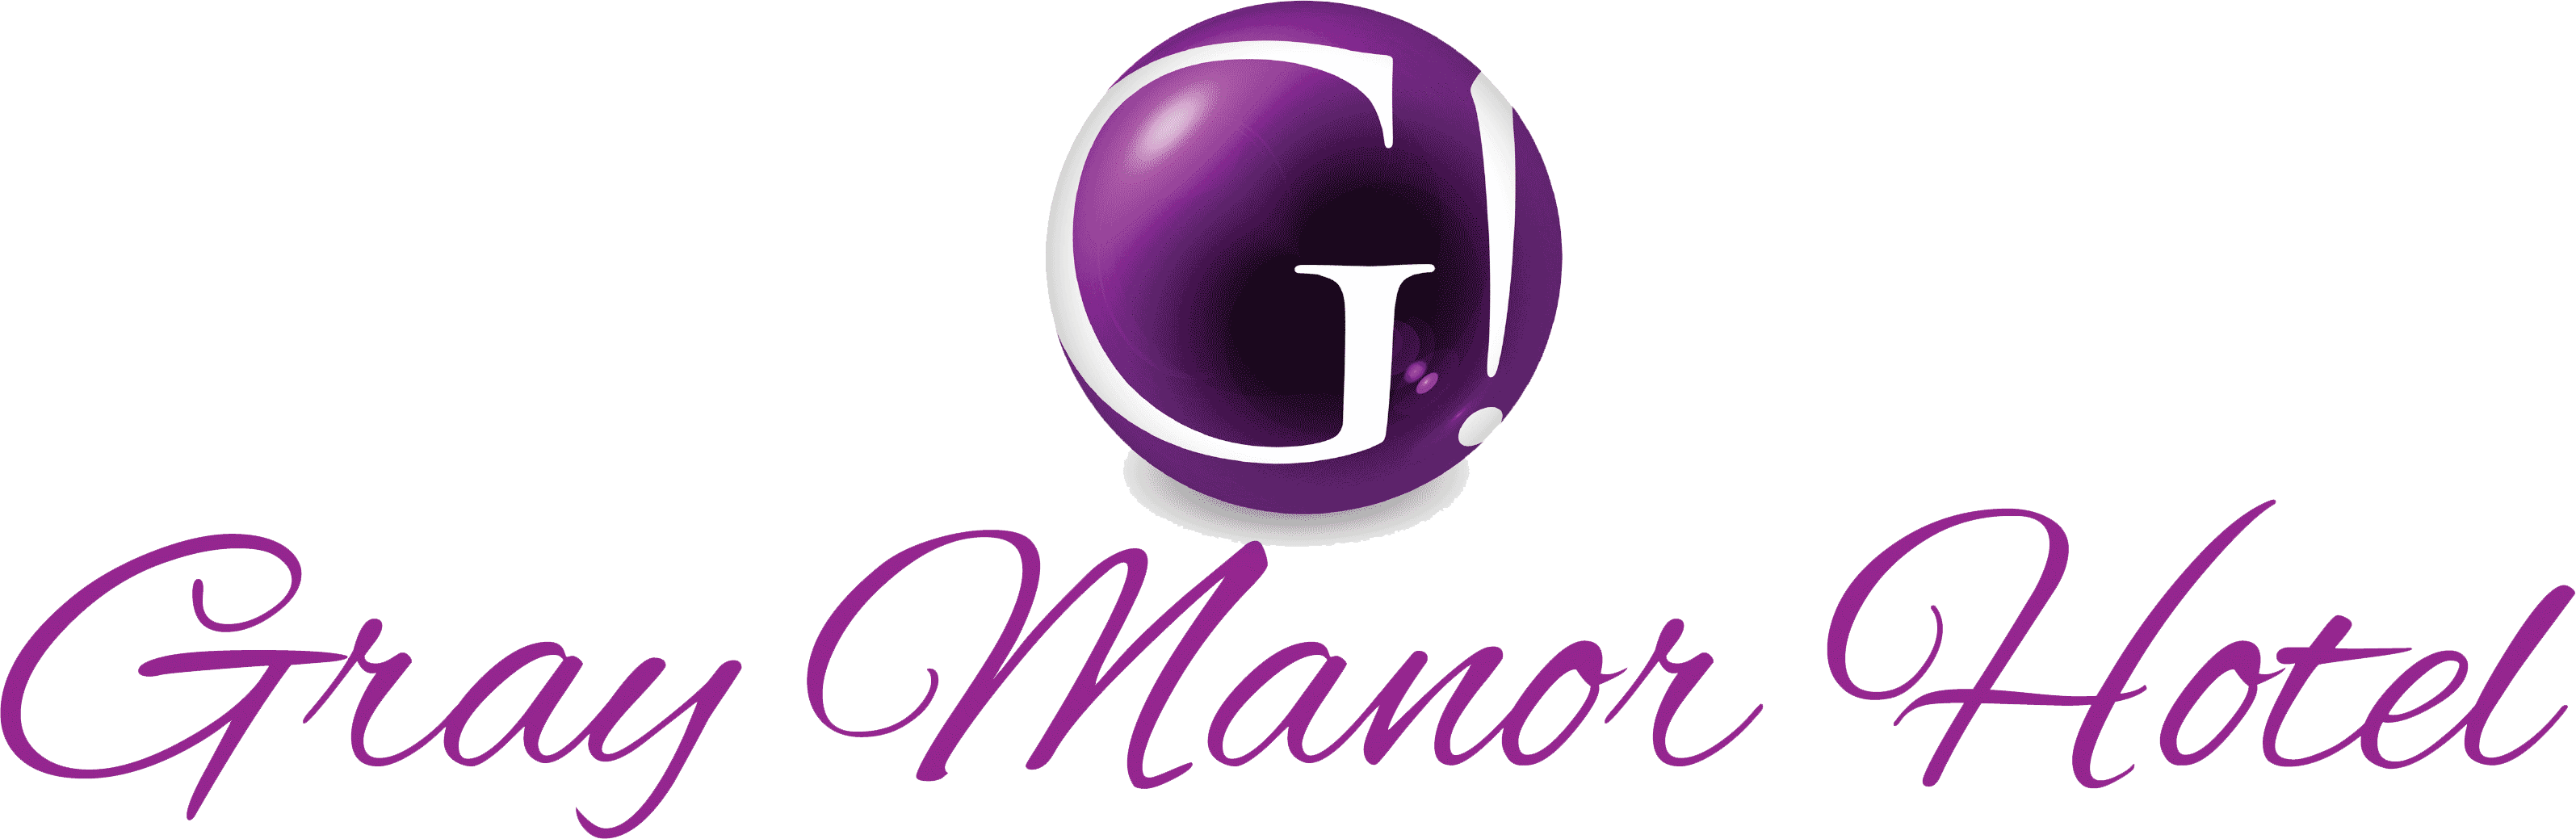 gray manor hotel logo